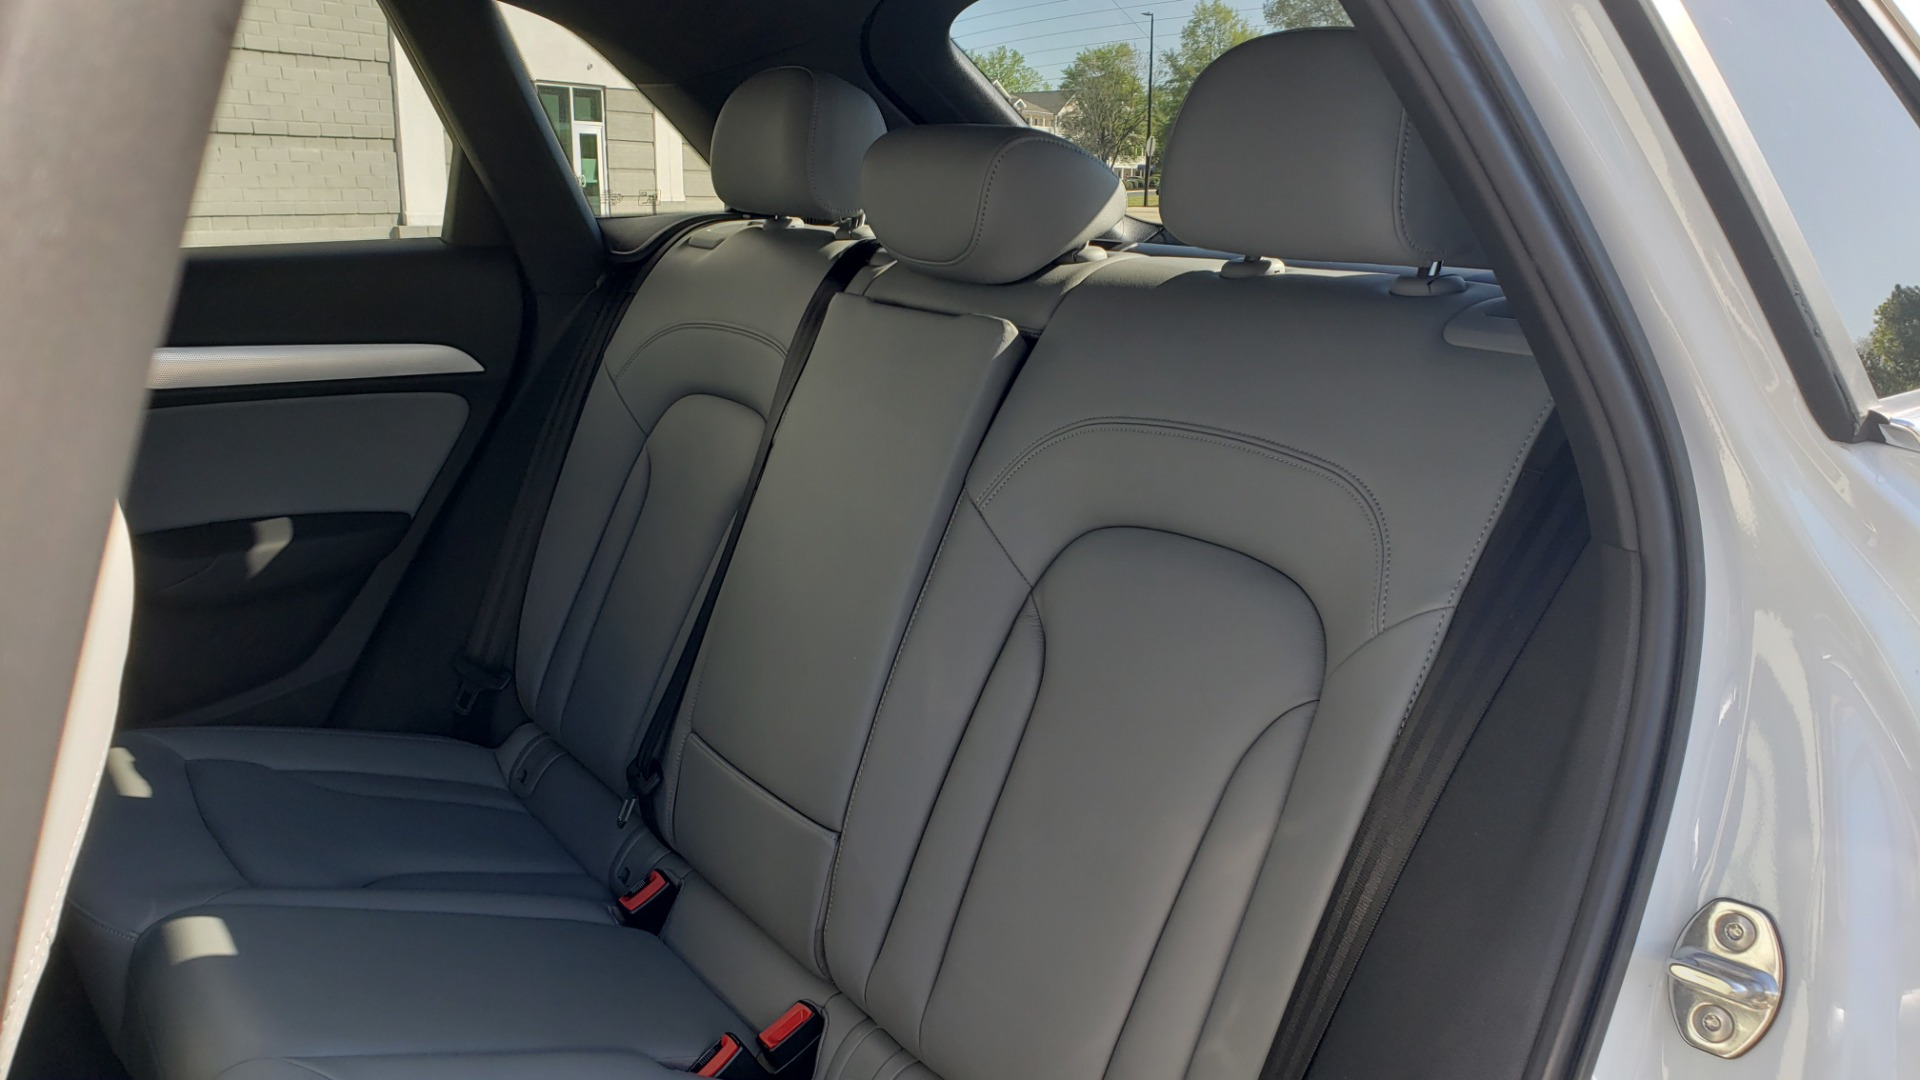 Used 2018 Audi Q3 PREMIUM PLUS 2.0T / SPORT PKG / NAV / BOSE / SUNROOF / REARVIEW for sale Sold at Formula Imports in Charlotte NC 28227 58